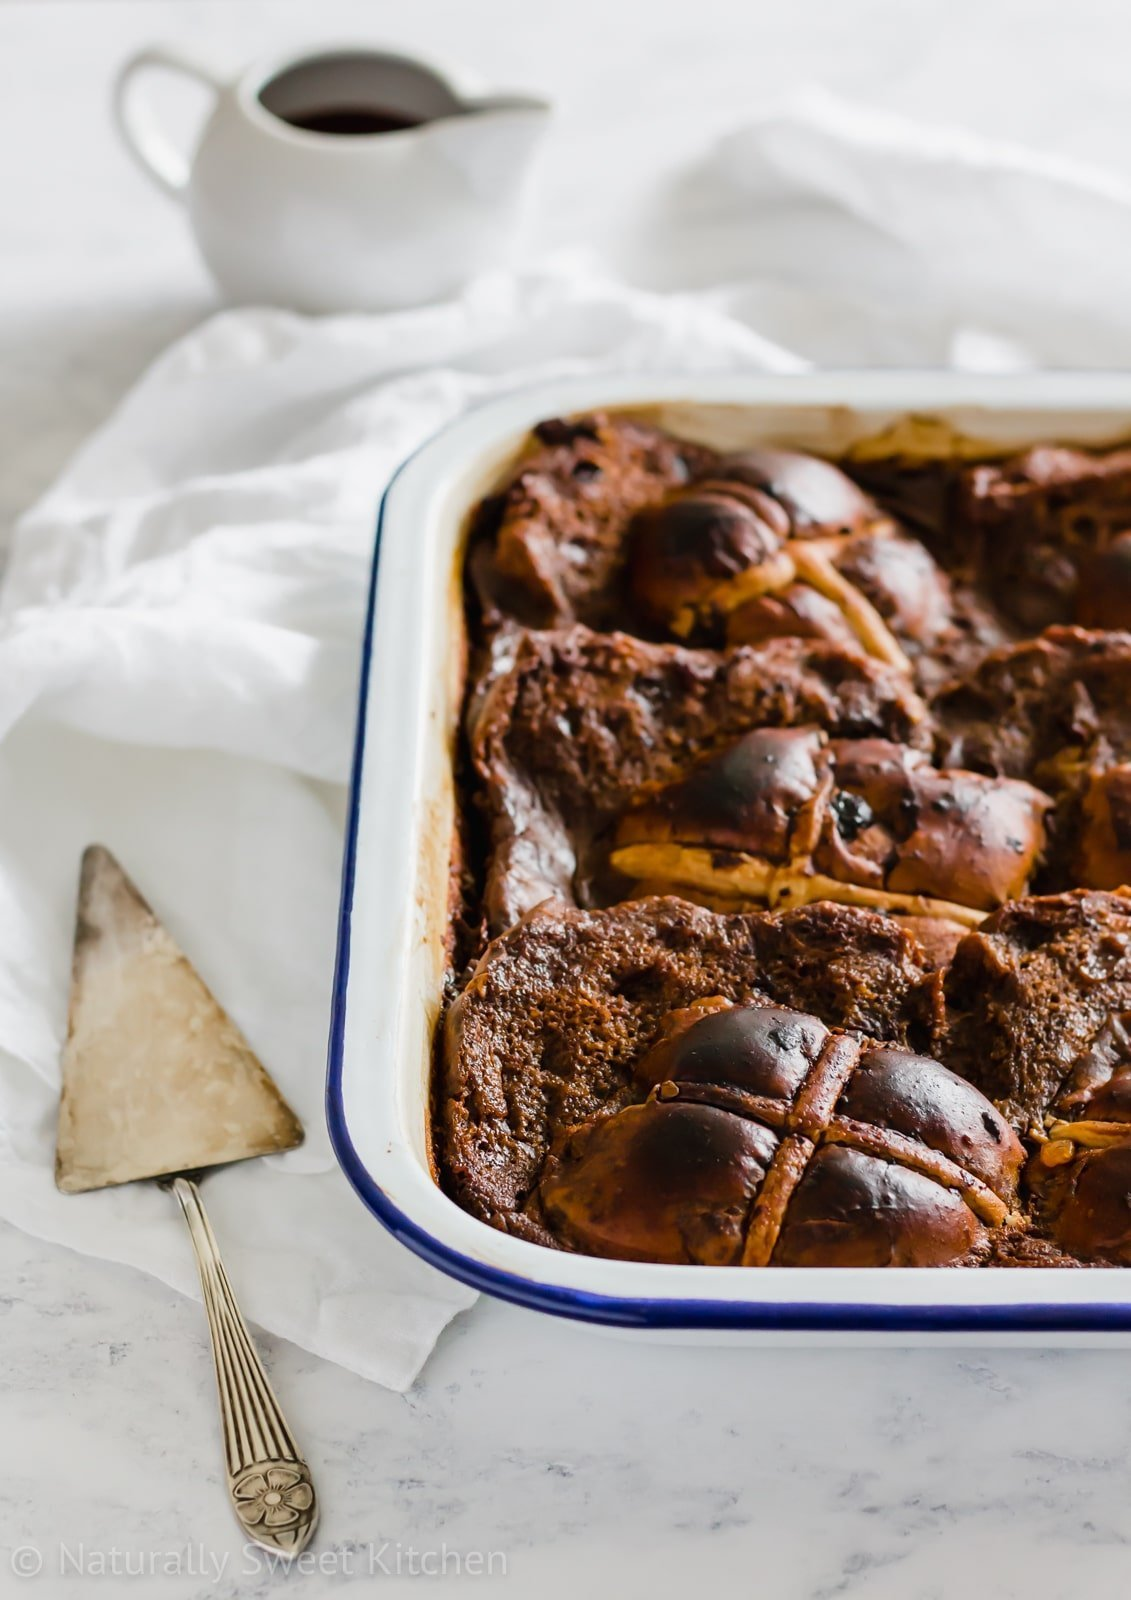 This rich Chocolate Hot Cross Bun Pudding recipe is the best way to use up stale hot cross buns for Easter dessert! A delicious refined sugar free twist on the classic bread and butter pudding. Visit naturallysweetkitchen.com for this recipe and more sugar free desserts. #hotcrossbuns #naturallysweetkitchen #chocolate #Easterdessert